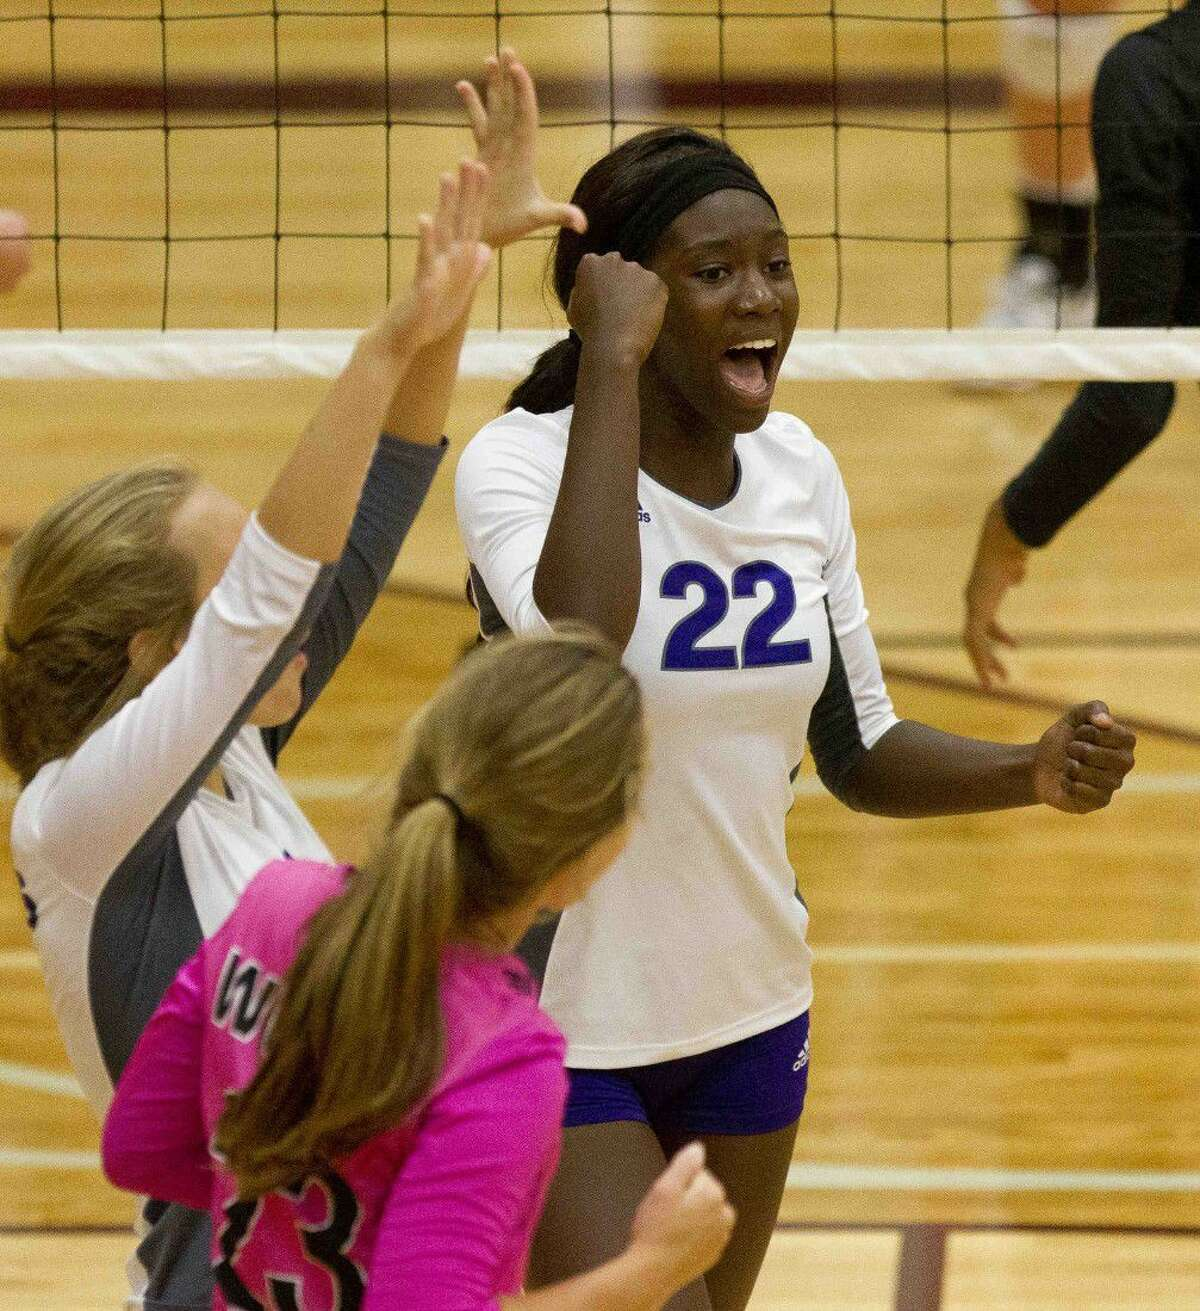 Willis' De'Janae Gilmore (22) celebrates a kill during a match against Magnolia at the Volley-Battle tournament Friday at Magnolia High School. Go to HCNpics.com to purchase this photo and other like it.